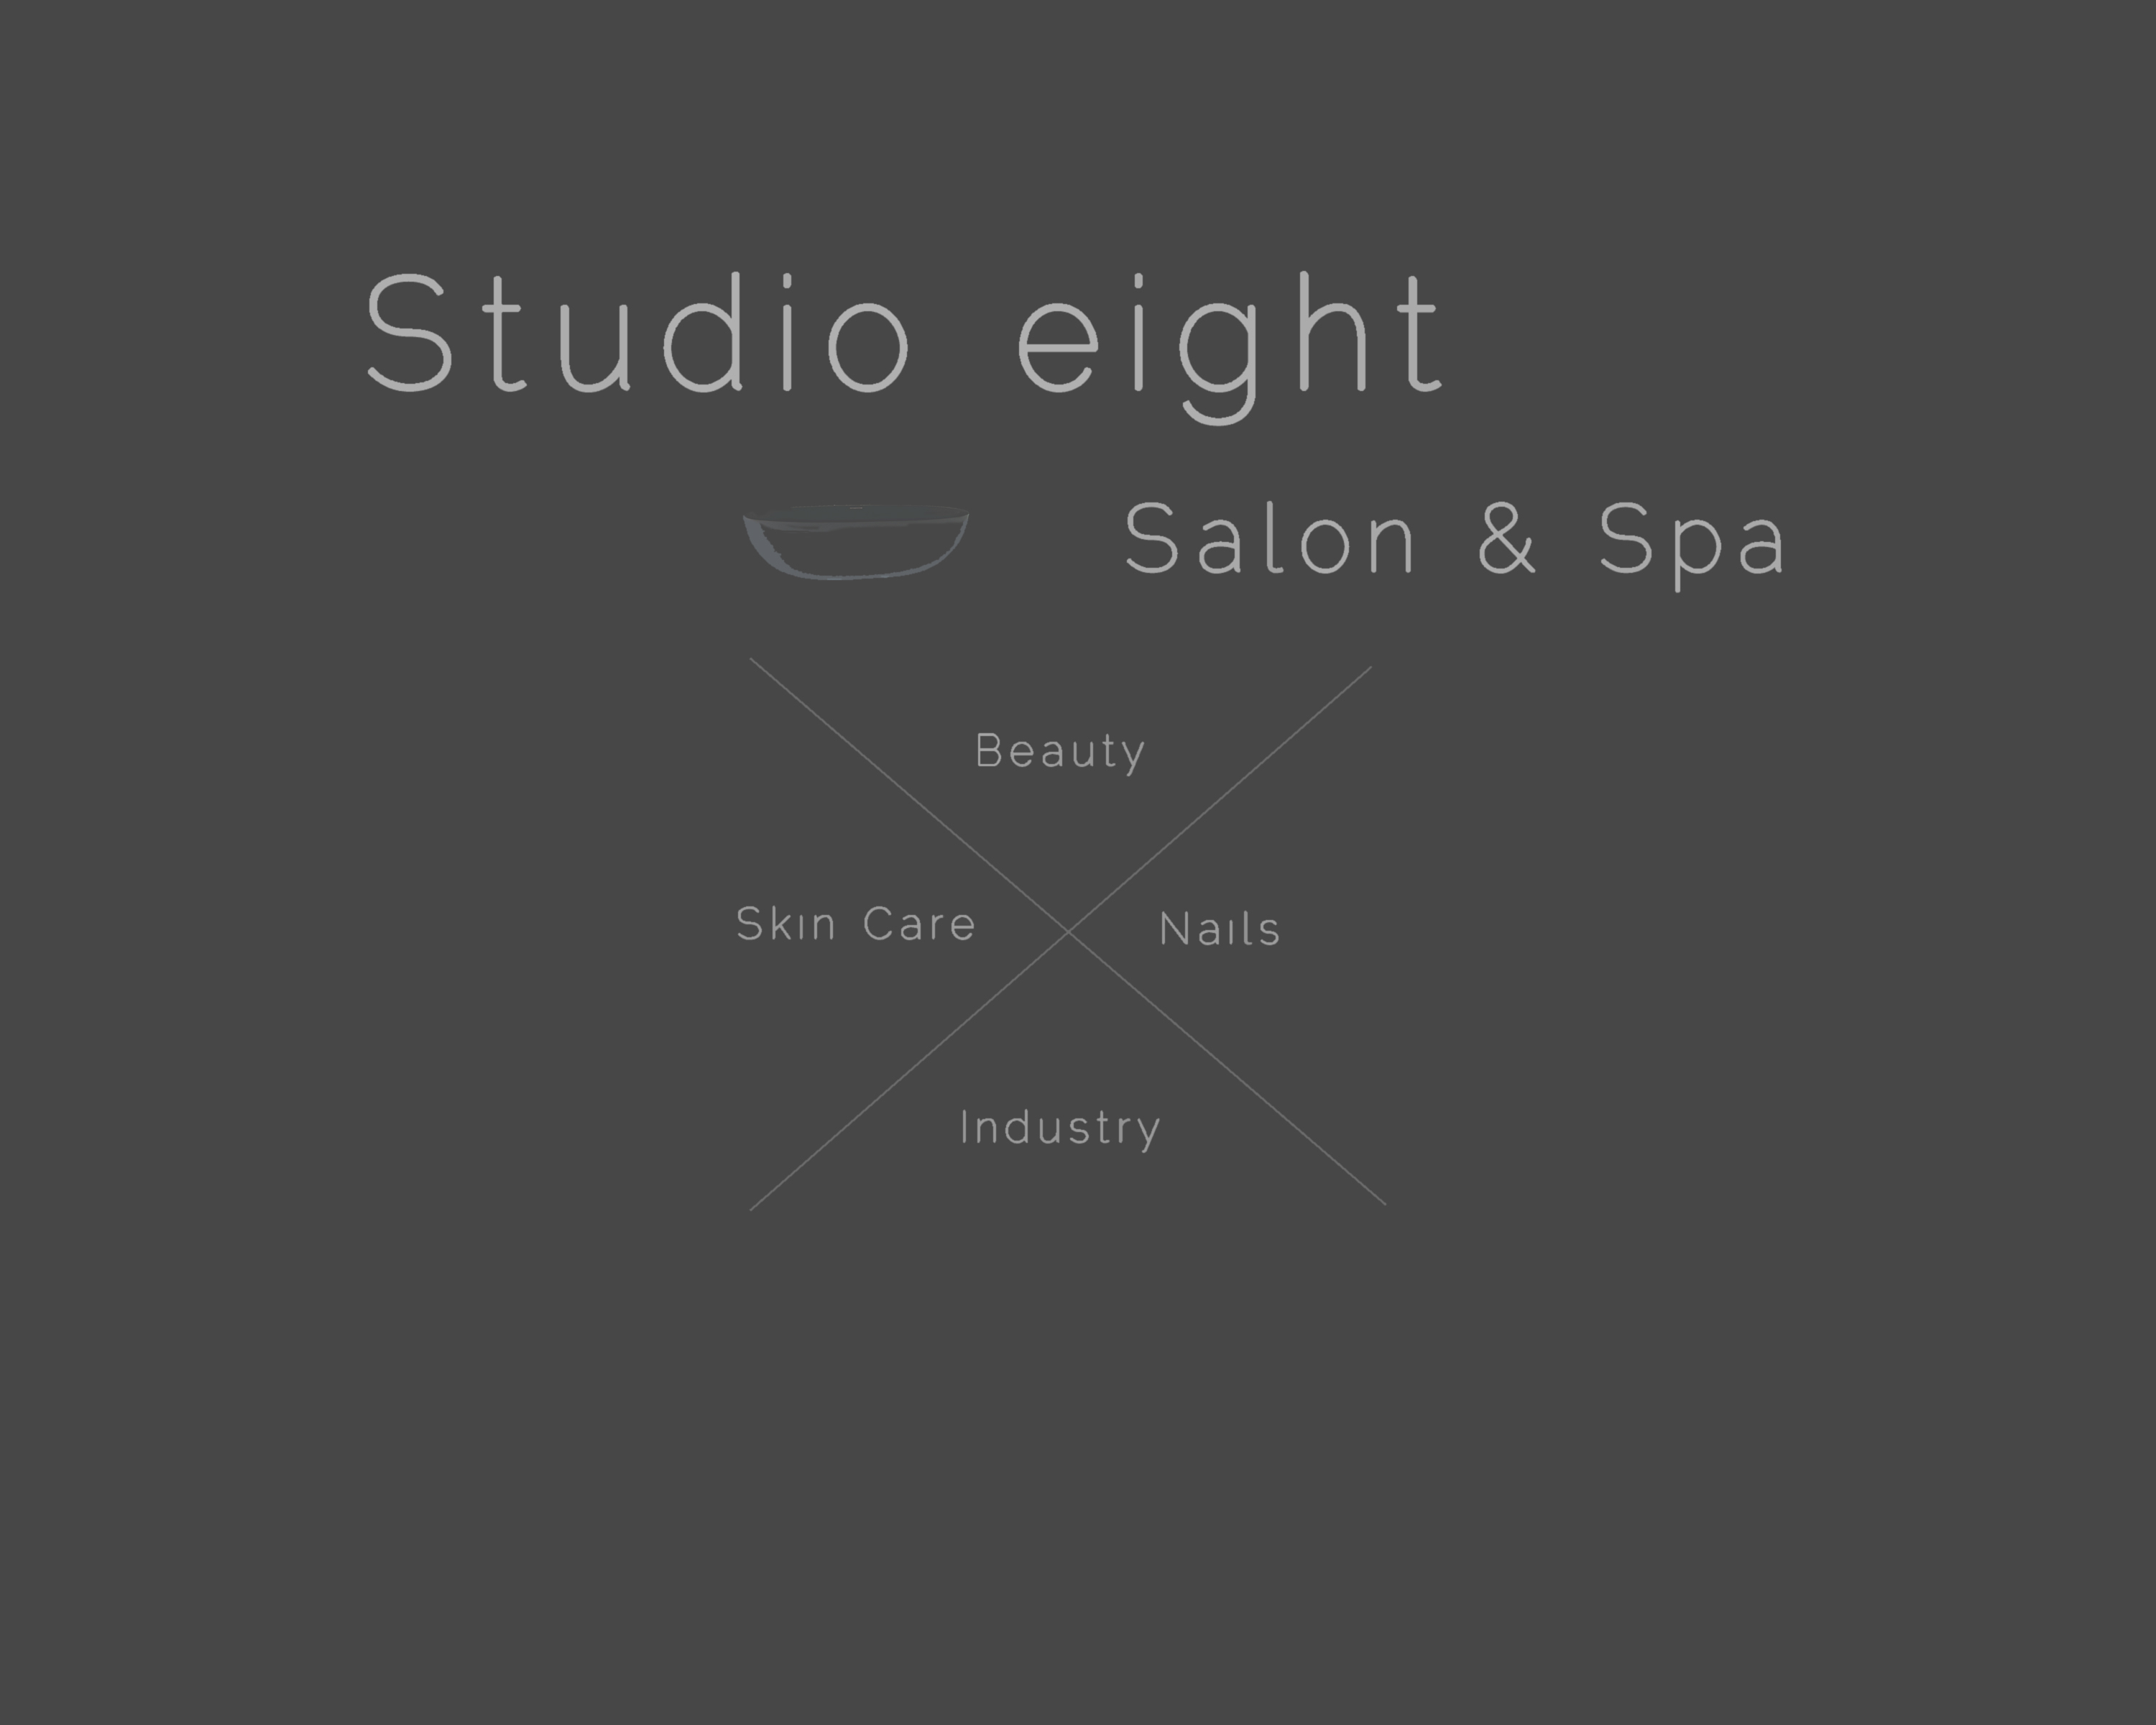 Logo Design by Thodoris Sairoglou - Entry No. 10 in the Logo Design Contest Captivating Logo Design for studio eight salon & spa.